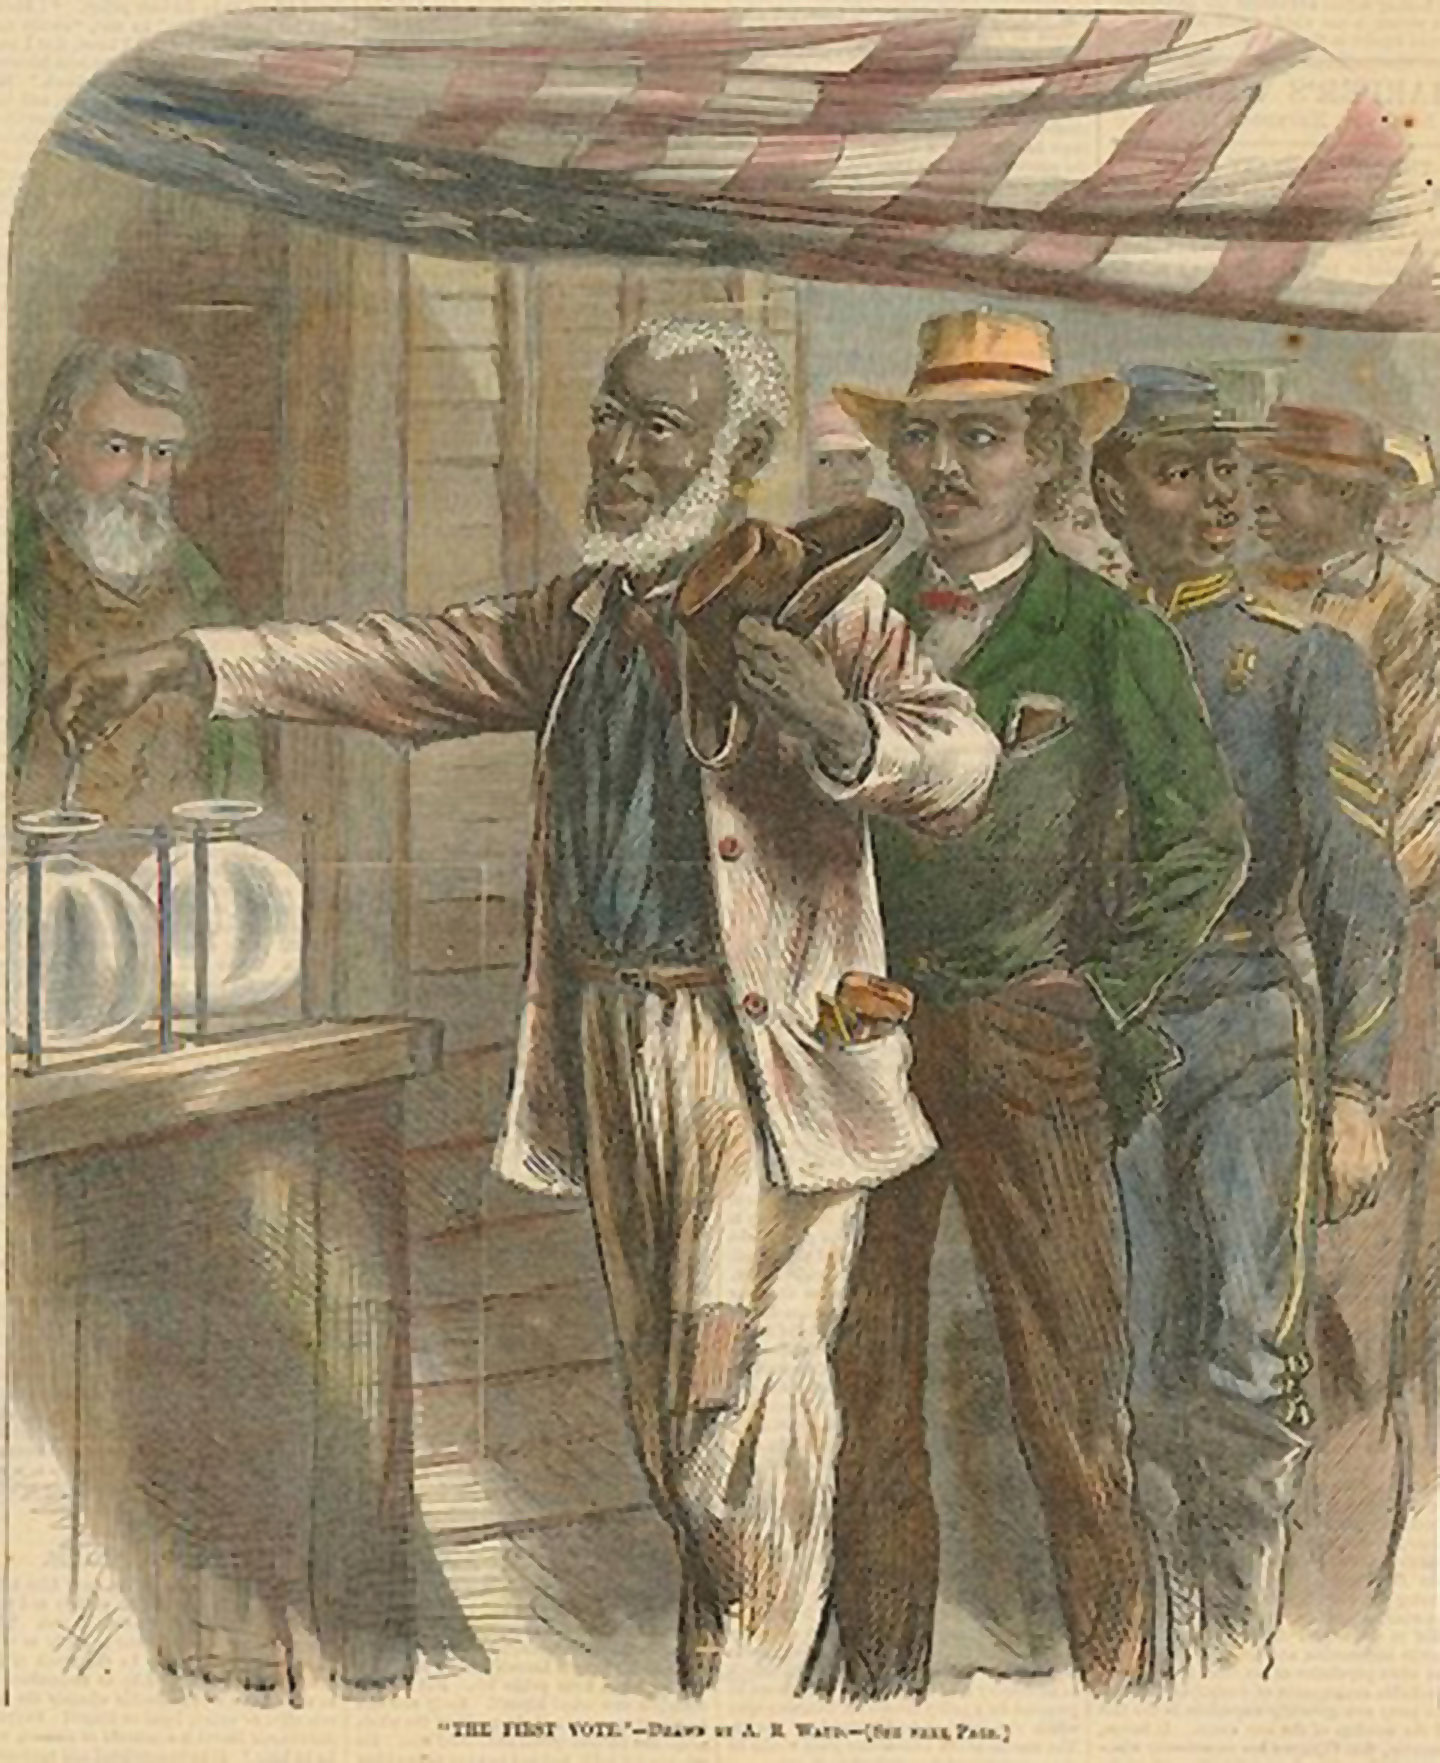 African Americans vote for the first time, as depicted in 1867 on the cover of Harper's magazine. Engraving by Alfred R. Waud